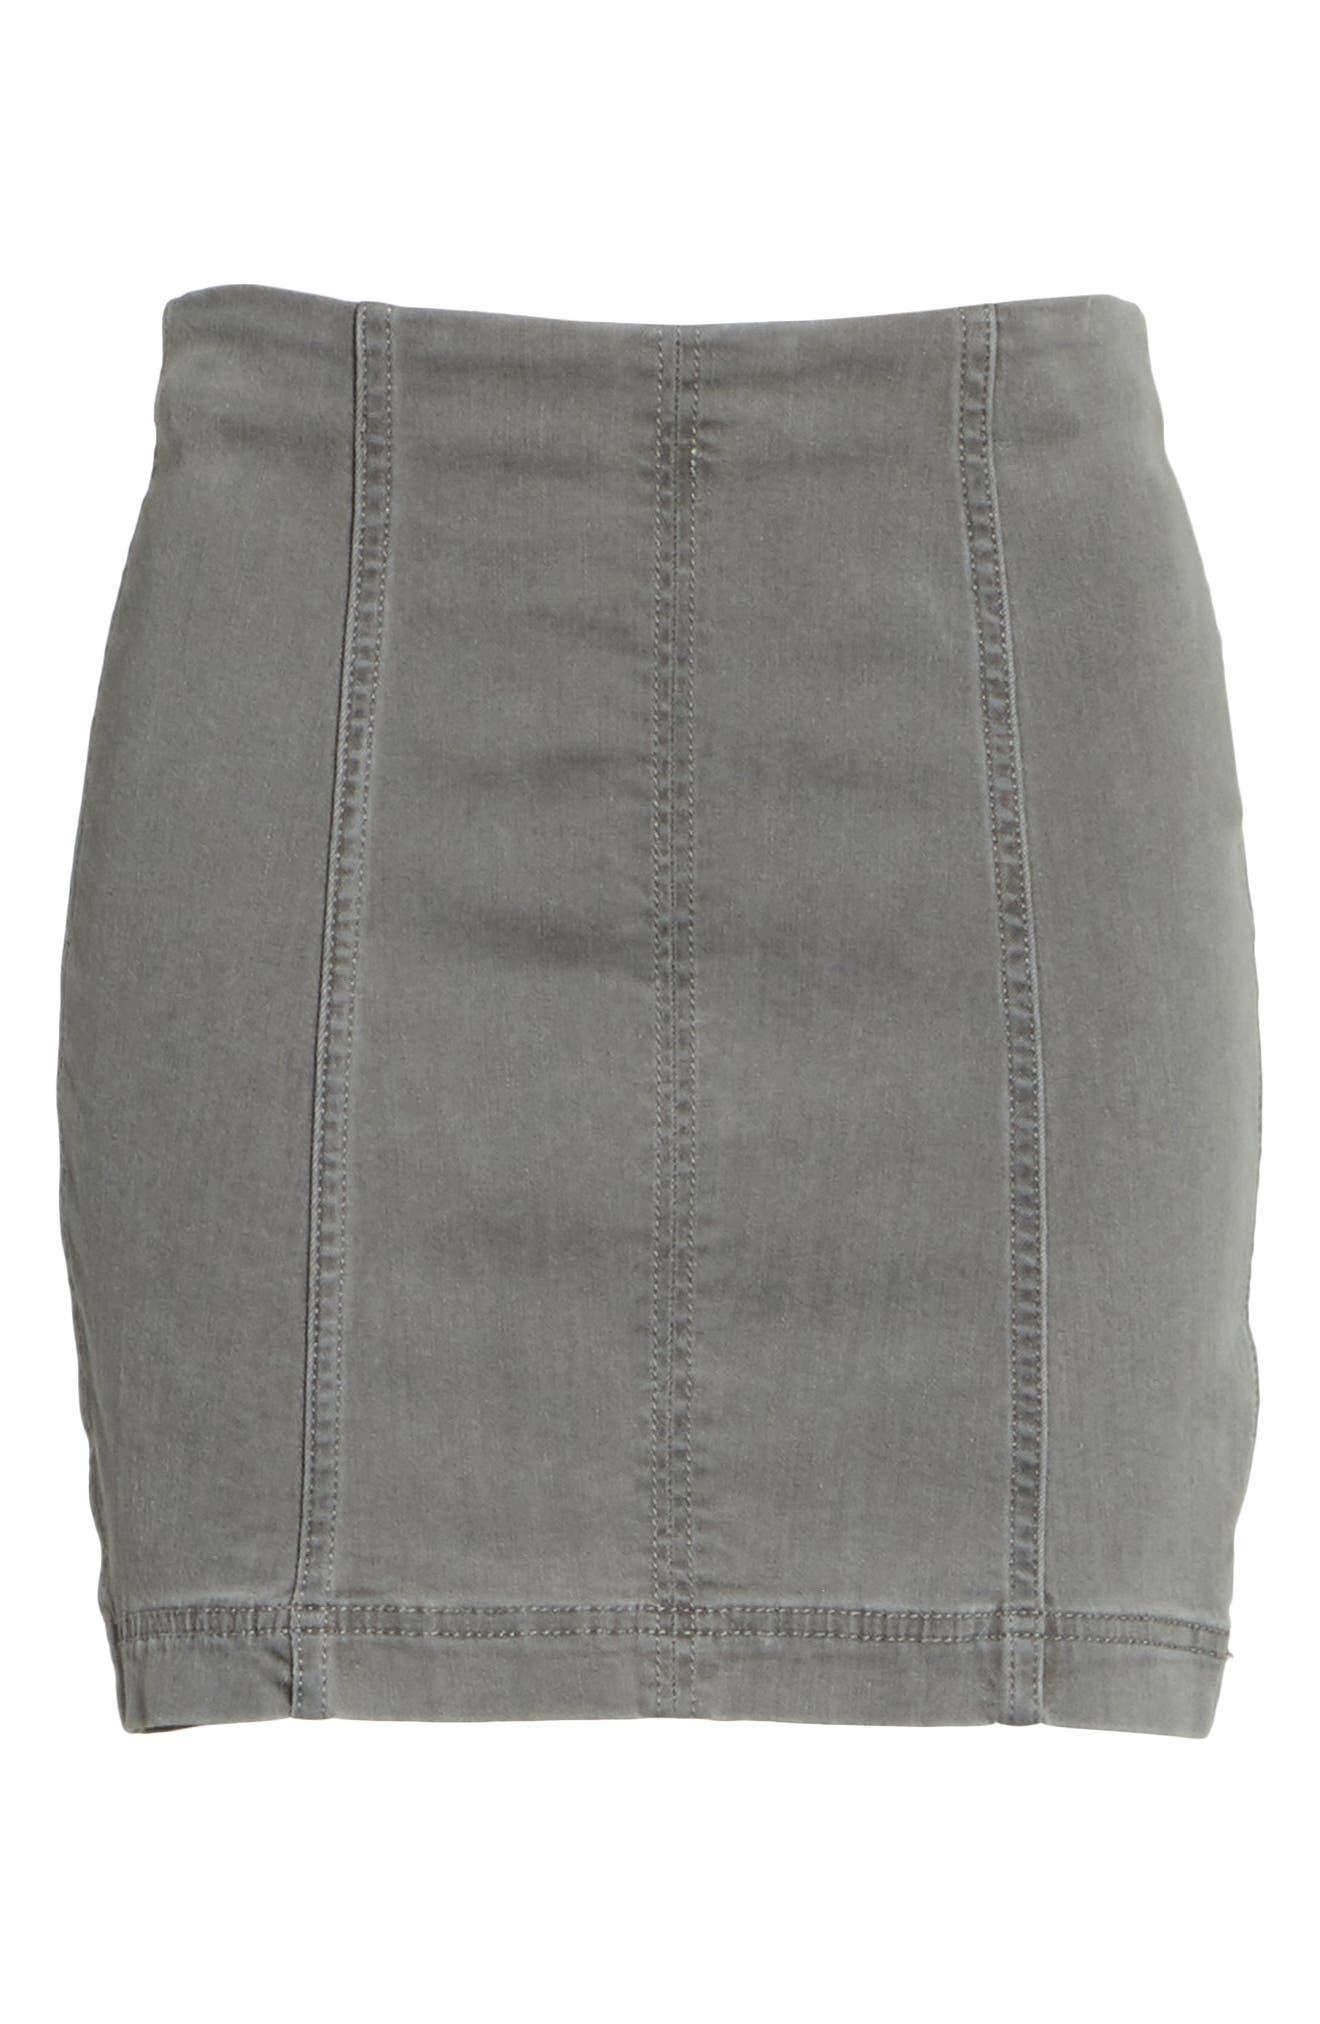 FREE PEOPLE, We the Free by Free People Modern Femme Denim Miniskirt, Alternate thumbnail 6, color, LIGHT GREY